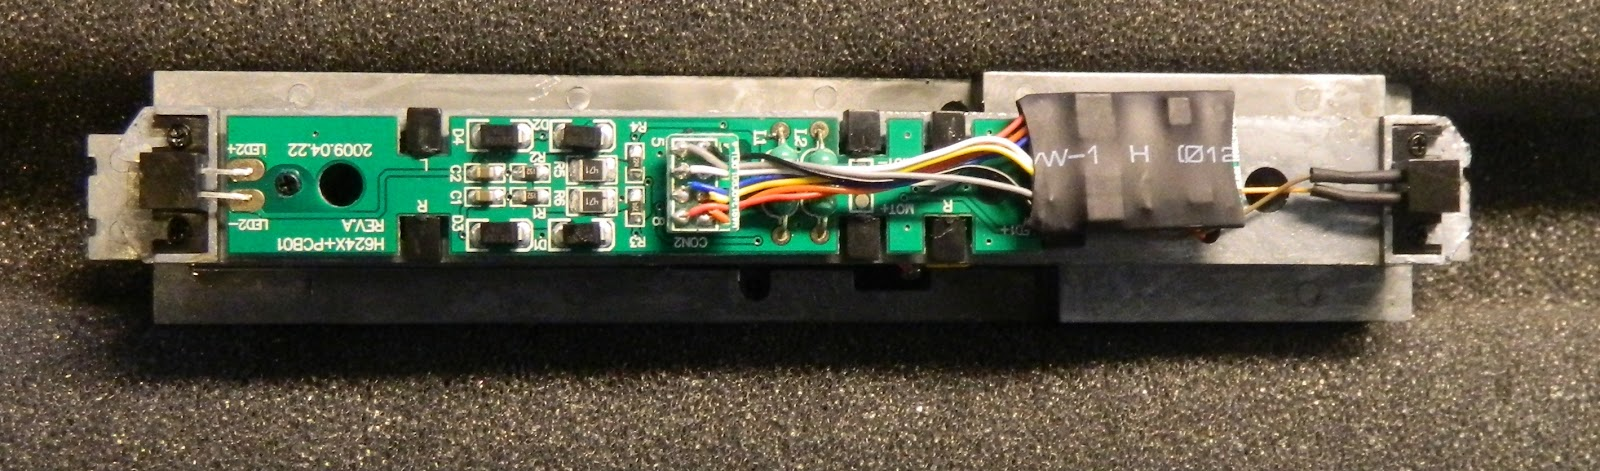 Tcs Dcc Wiring For Diagram likewise Bachmann Dcc Decoder Wiring Diagram moreover Dcc Wiring Diagram together with Nce Wiring Diagram as well Digitrax Wiring Diagram. on tsunami sound decoder wiring diagram